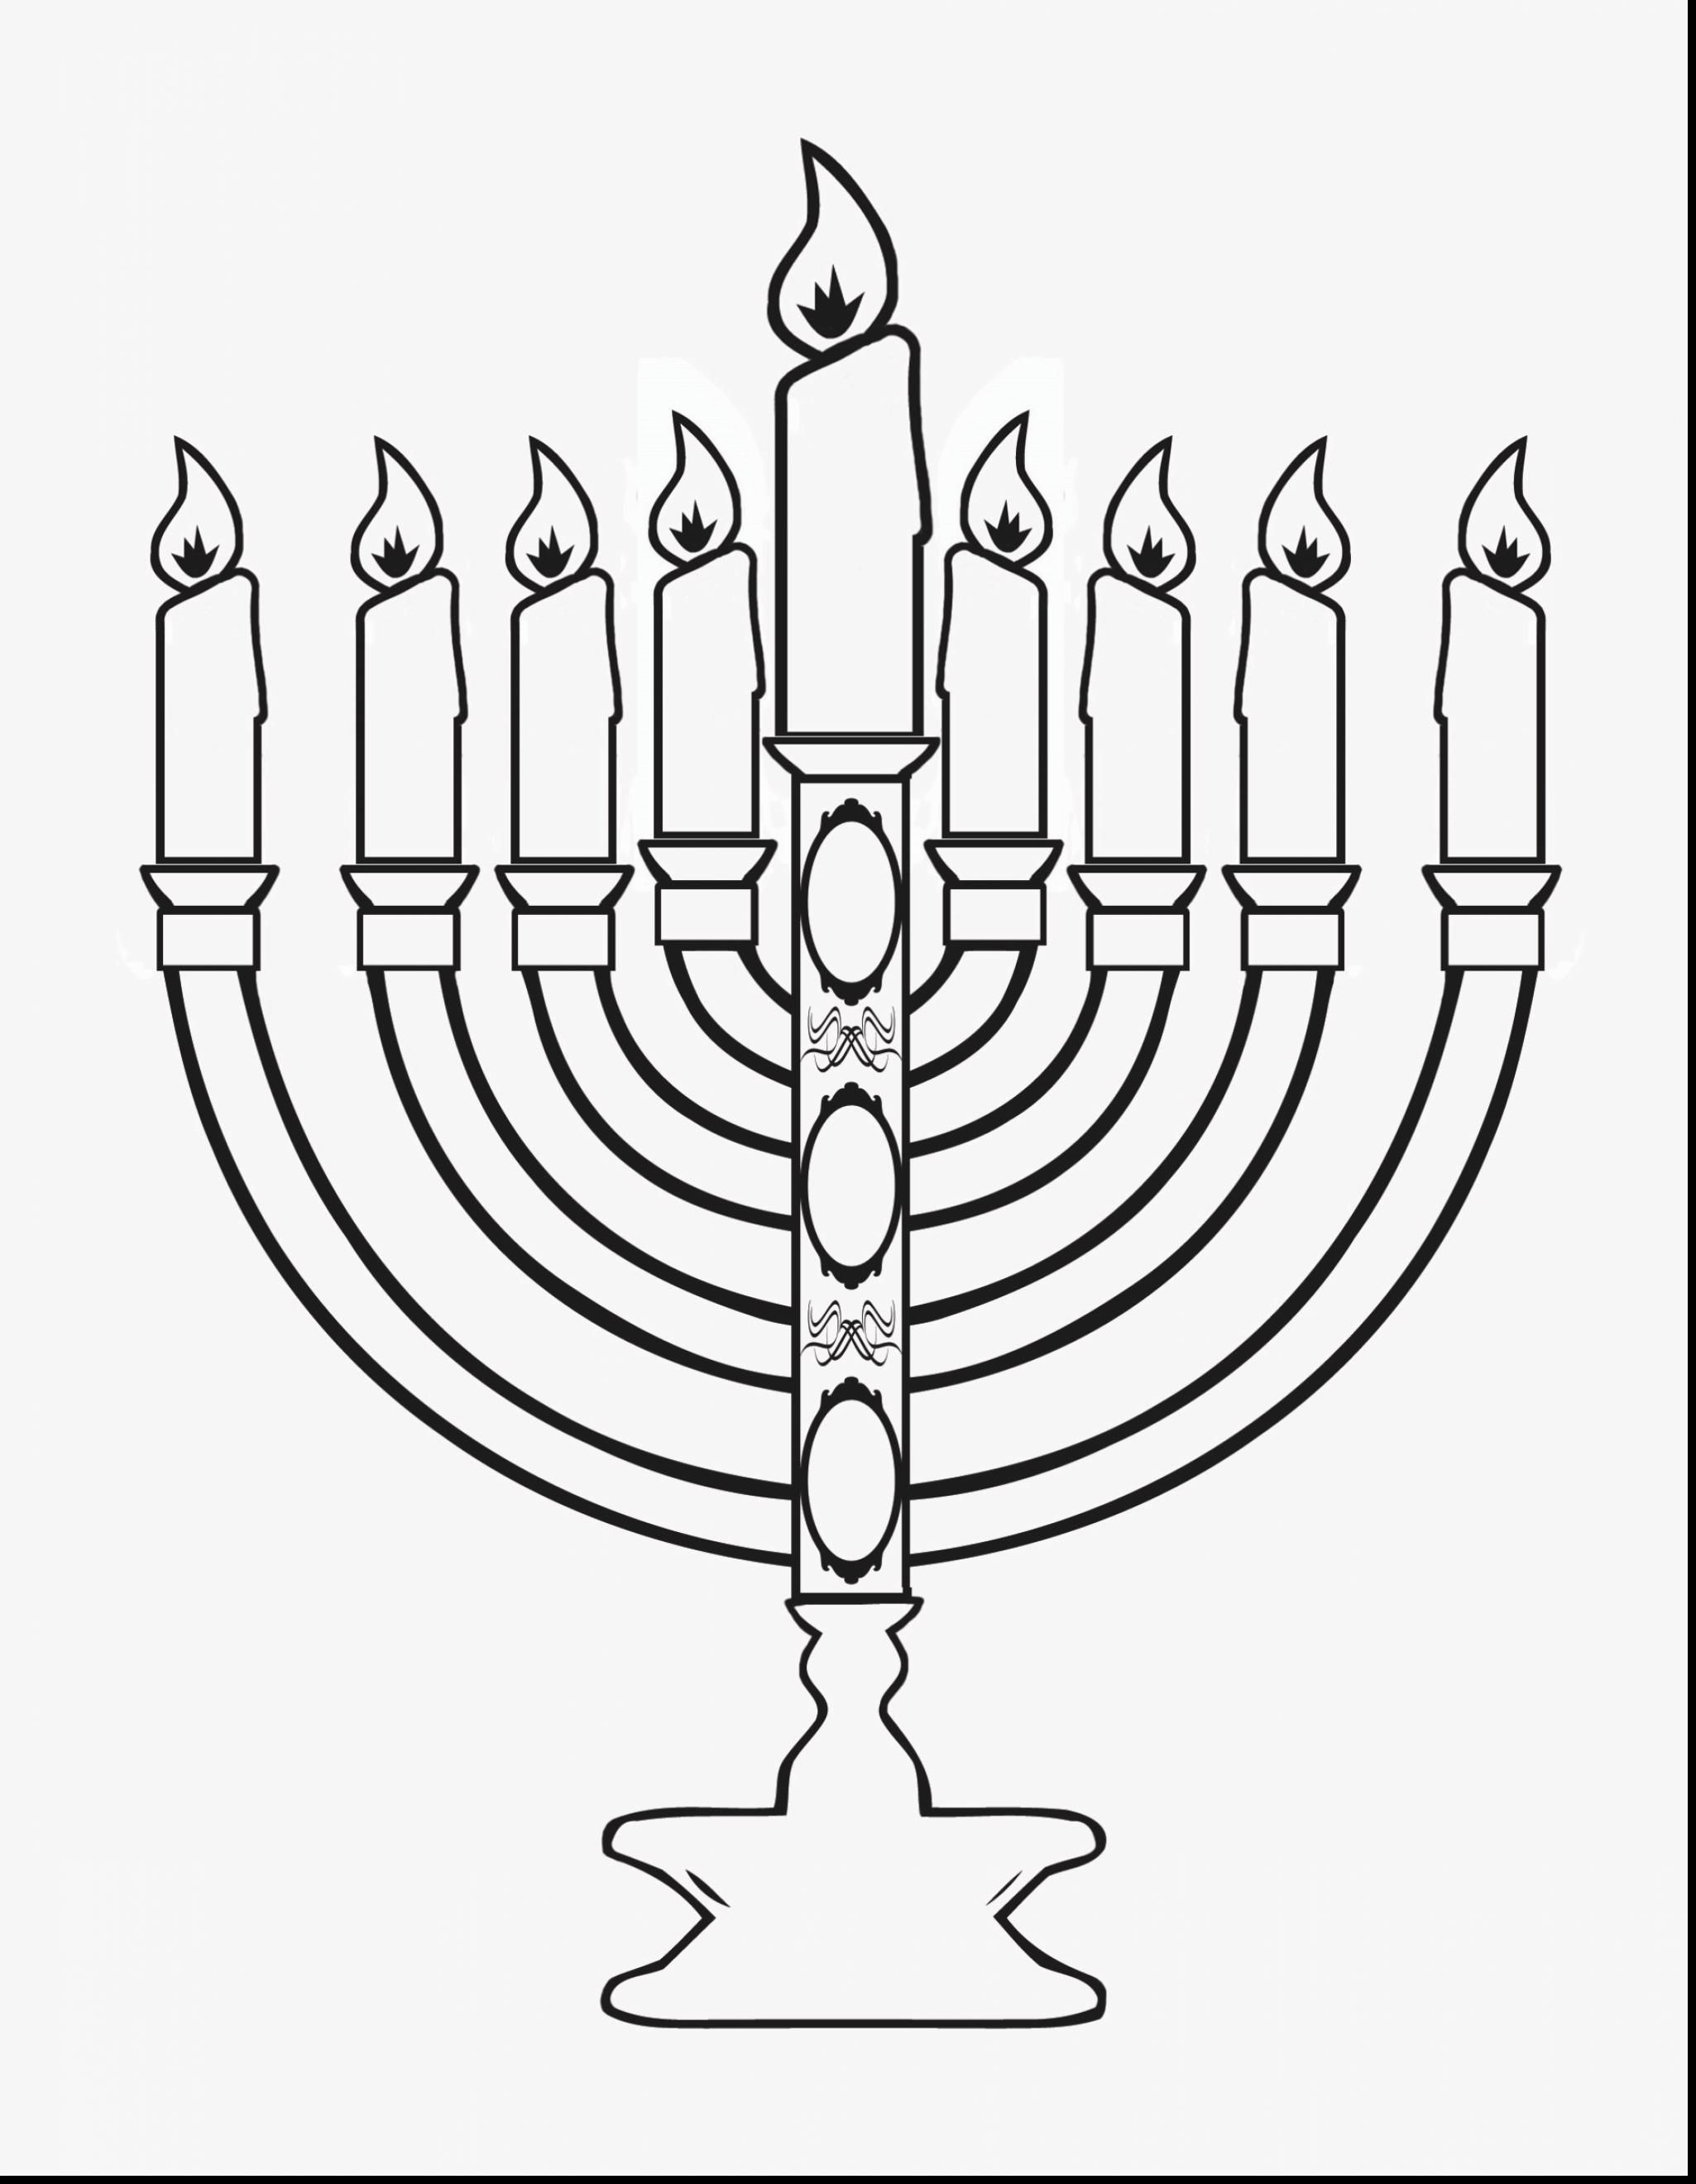 Hanukkah Menorah Outline Free Clip Art Super Coloring Pages Coloring Pages Geometric Coloring Pages